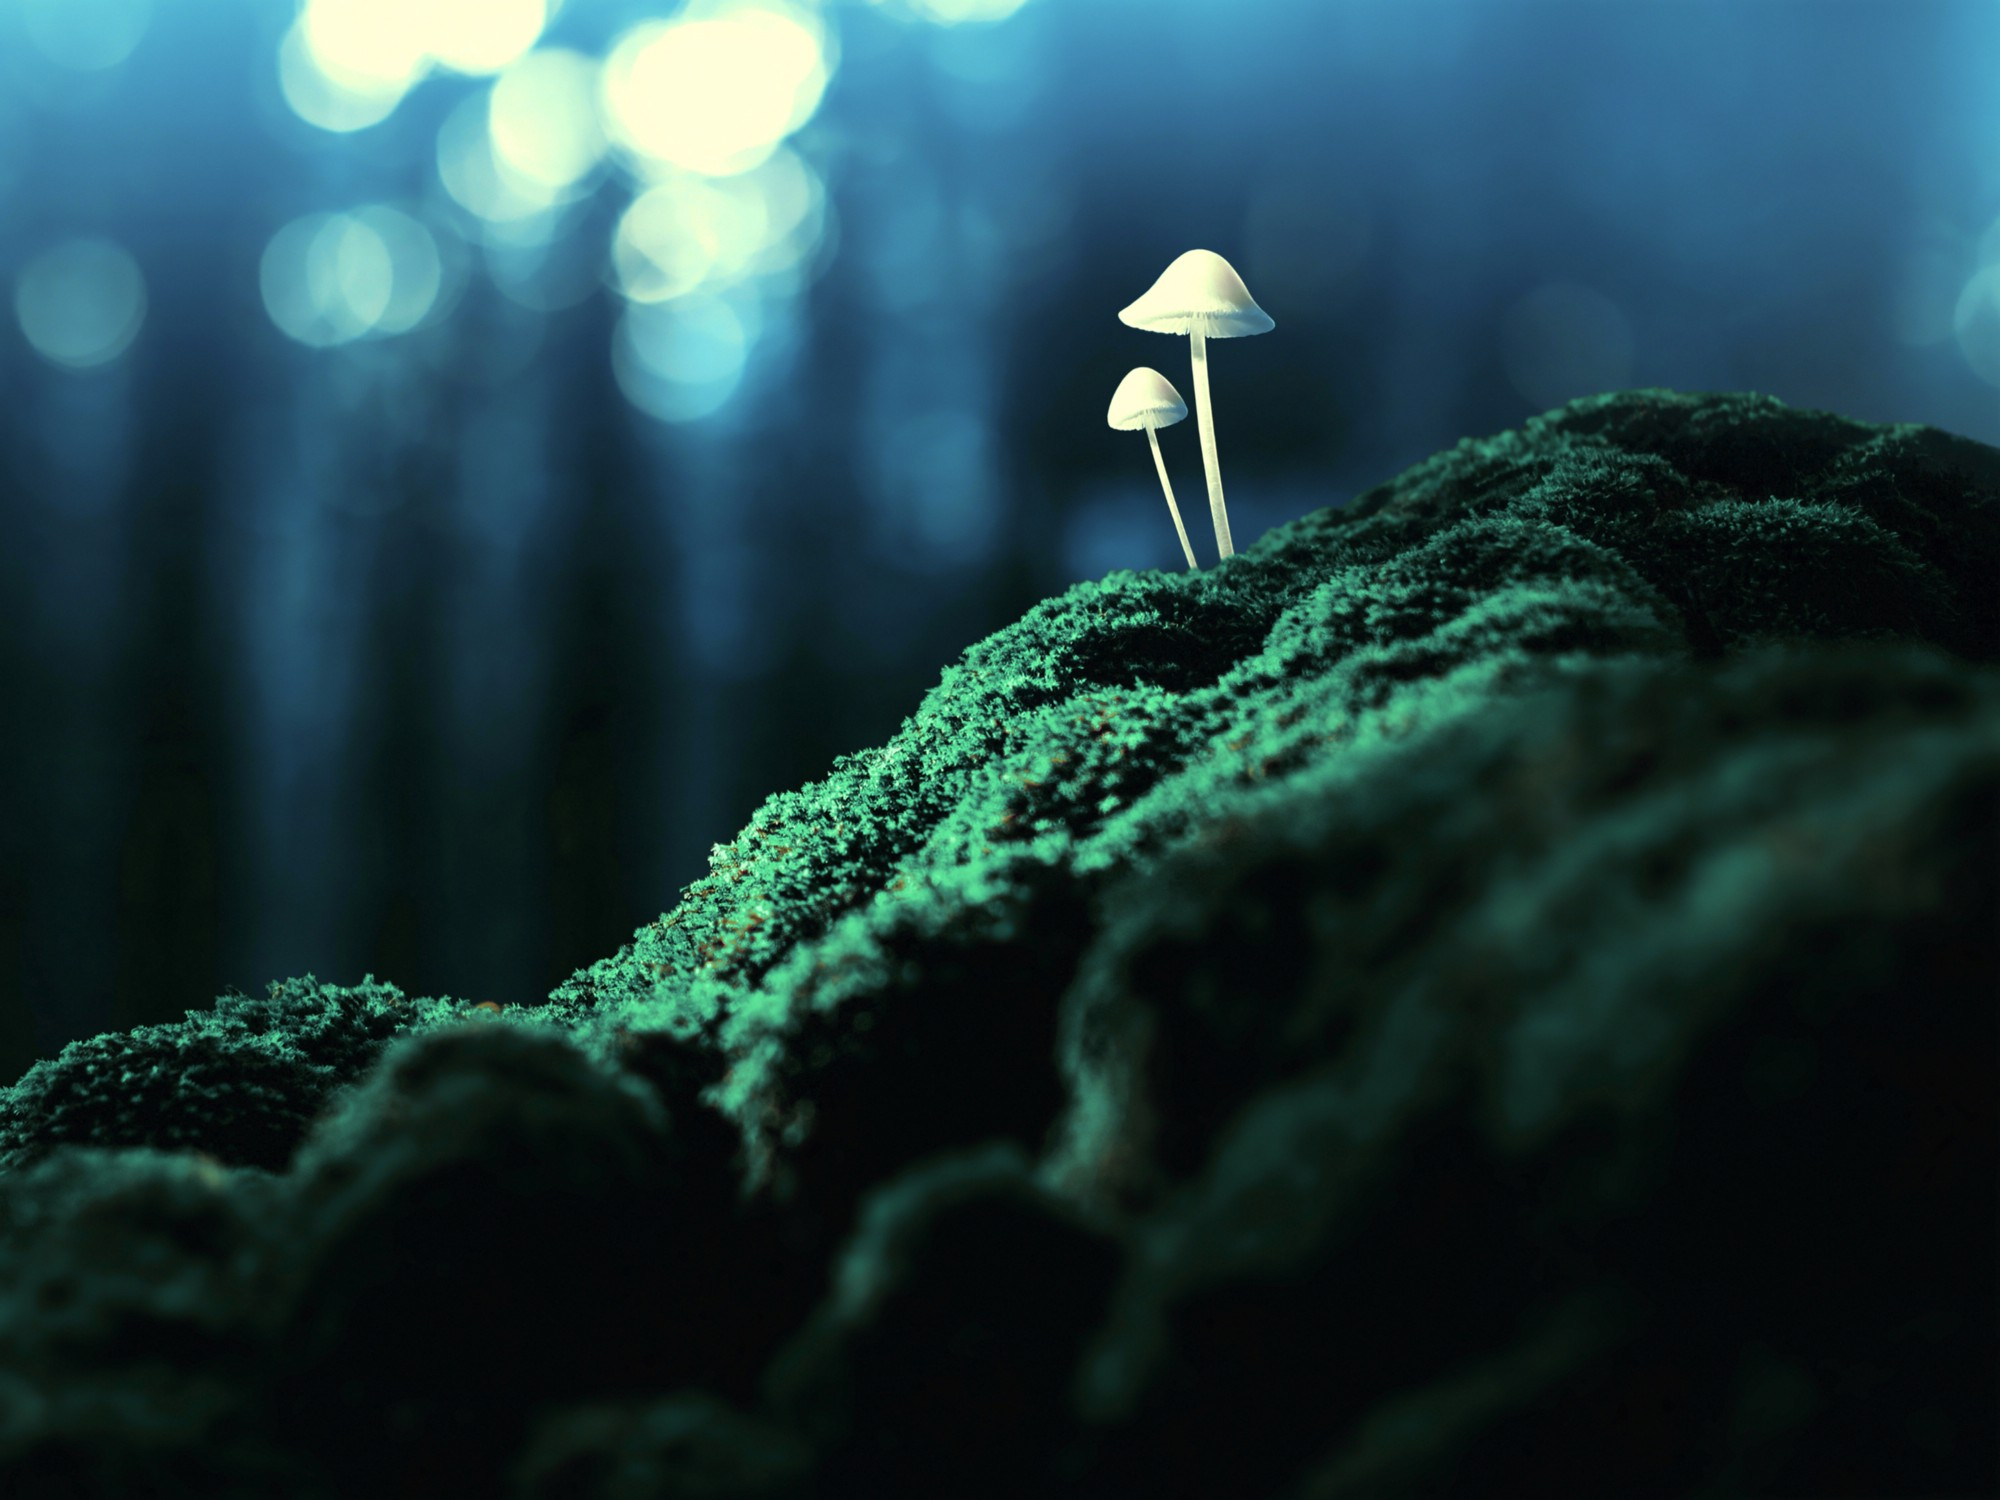 Meditating on Psychedelics : What Camp Are You In?